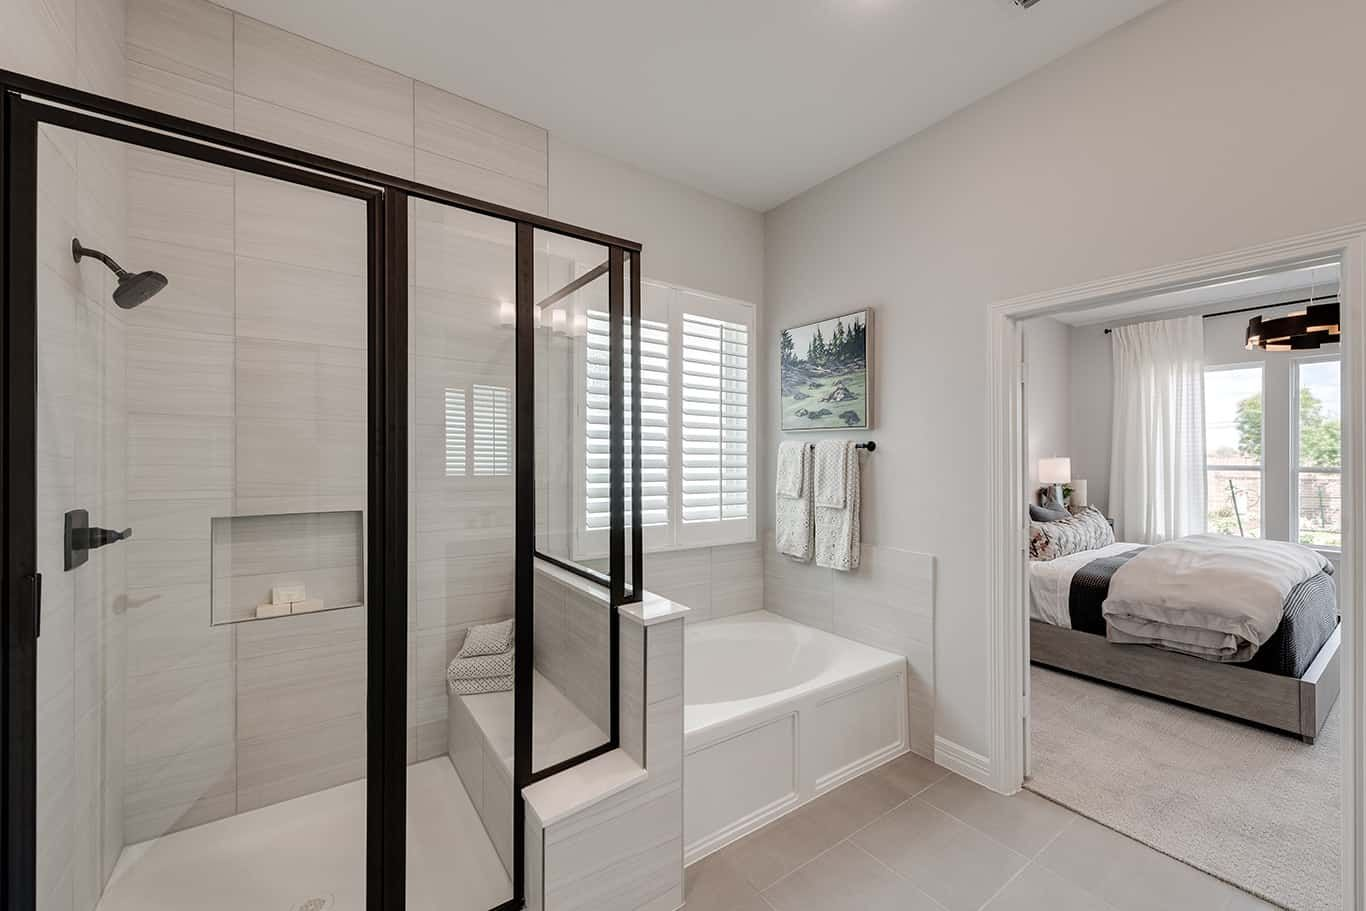 Bathroom featured in the Sheldon By Tri Pointe Homes in Austin, TX